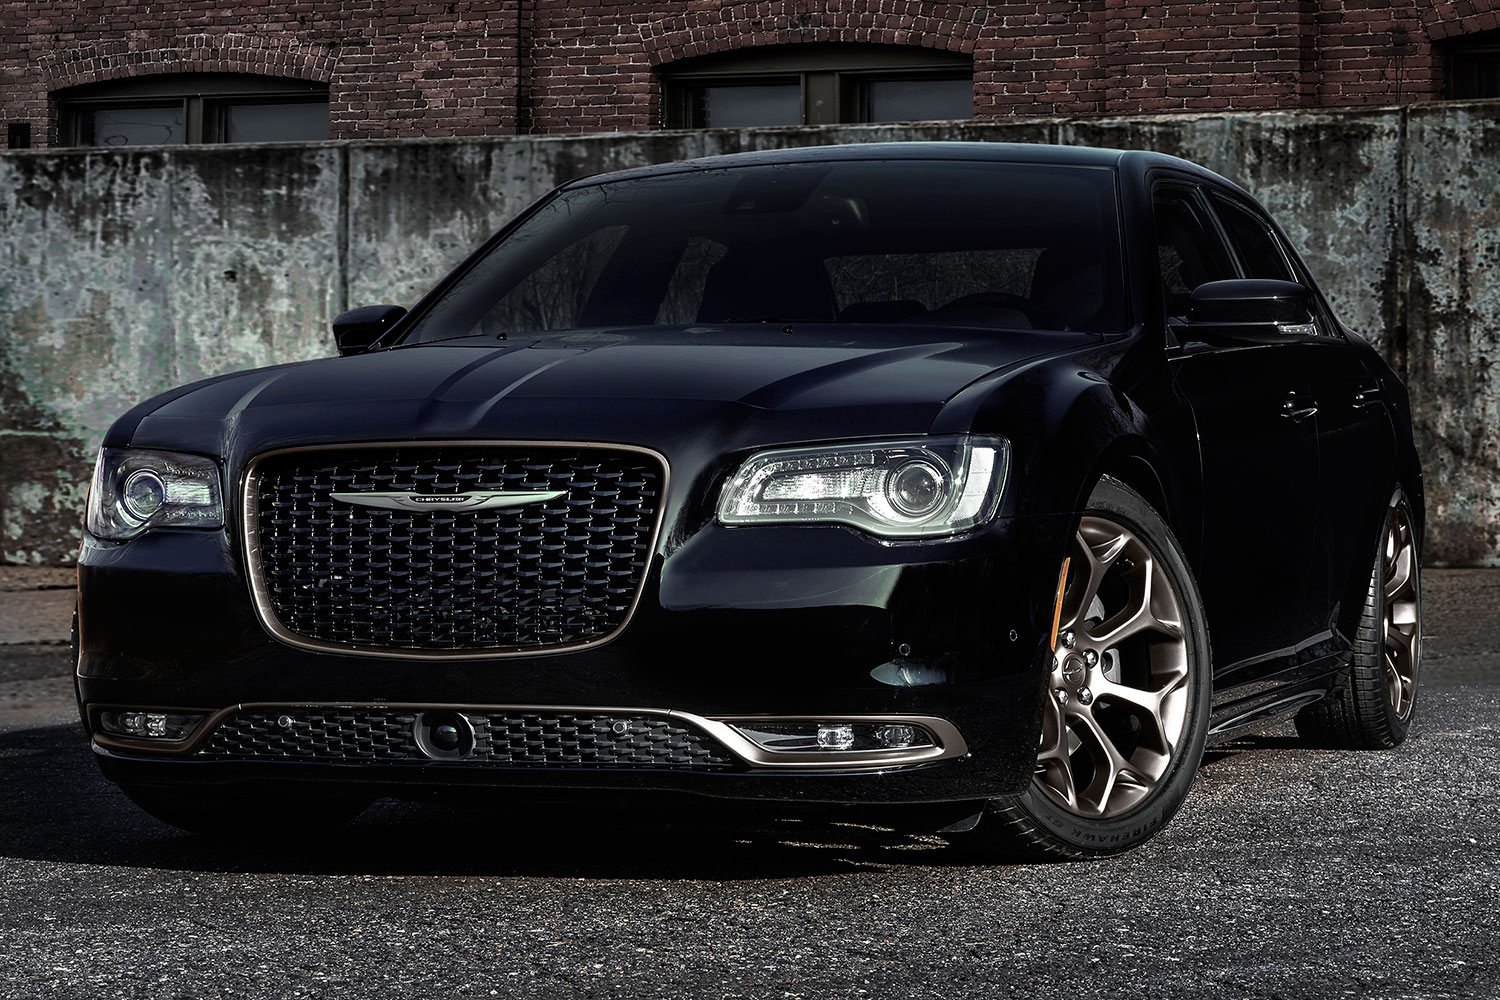 2018 chrysler 300c. interesting 300c 2019 chrysler 300 news rumors specs 2016 300s alloy edition featured to 2018 300c a